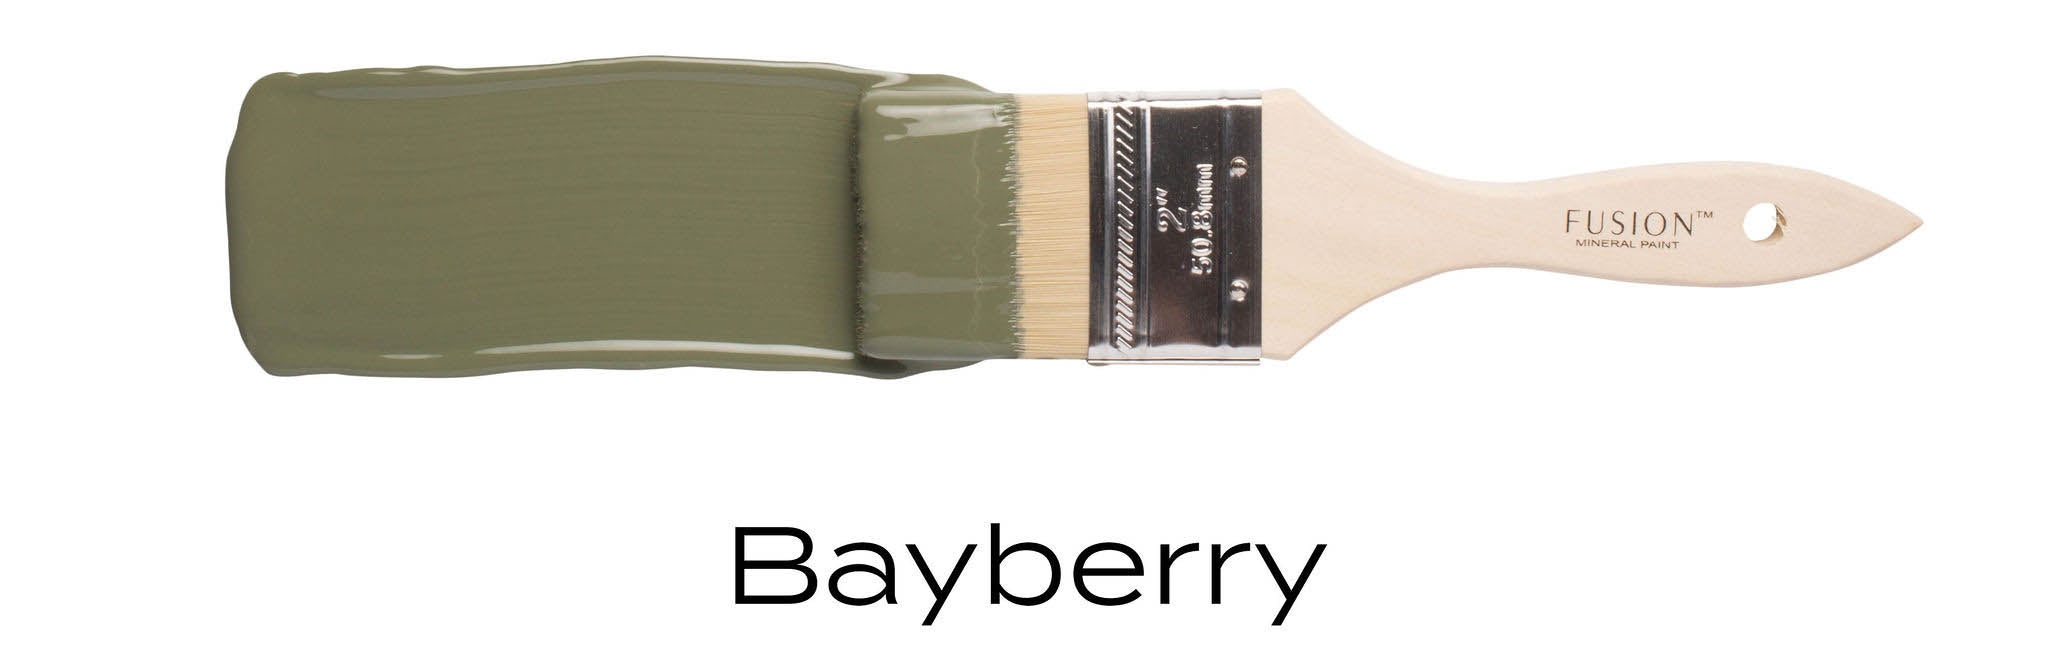 bayberry fusion mineral paint, dark natural green furniture paint